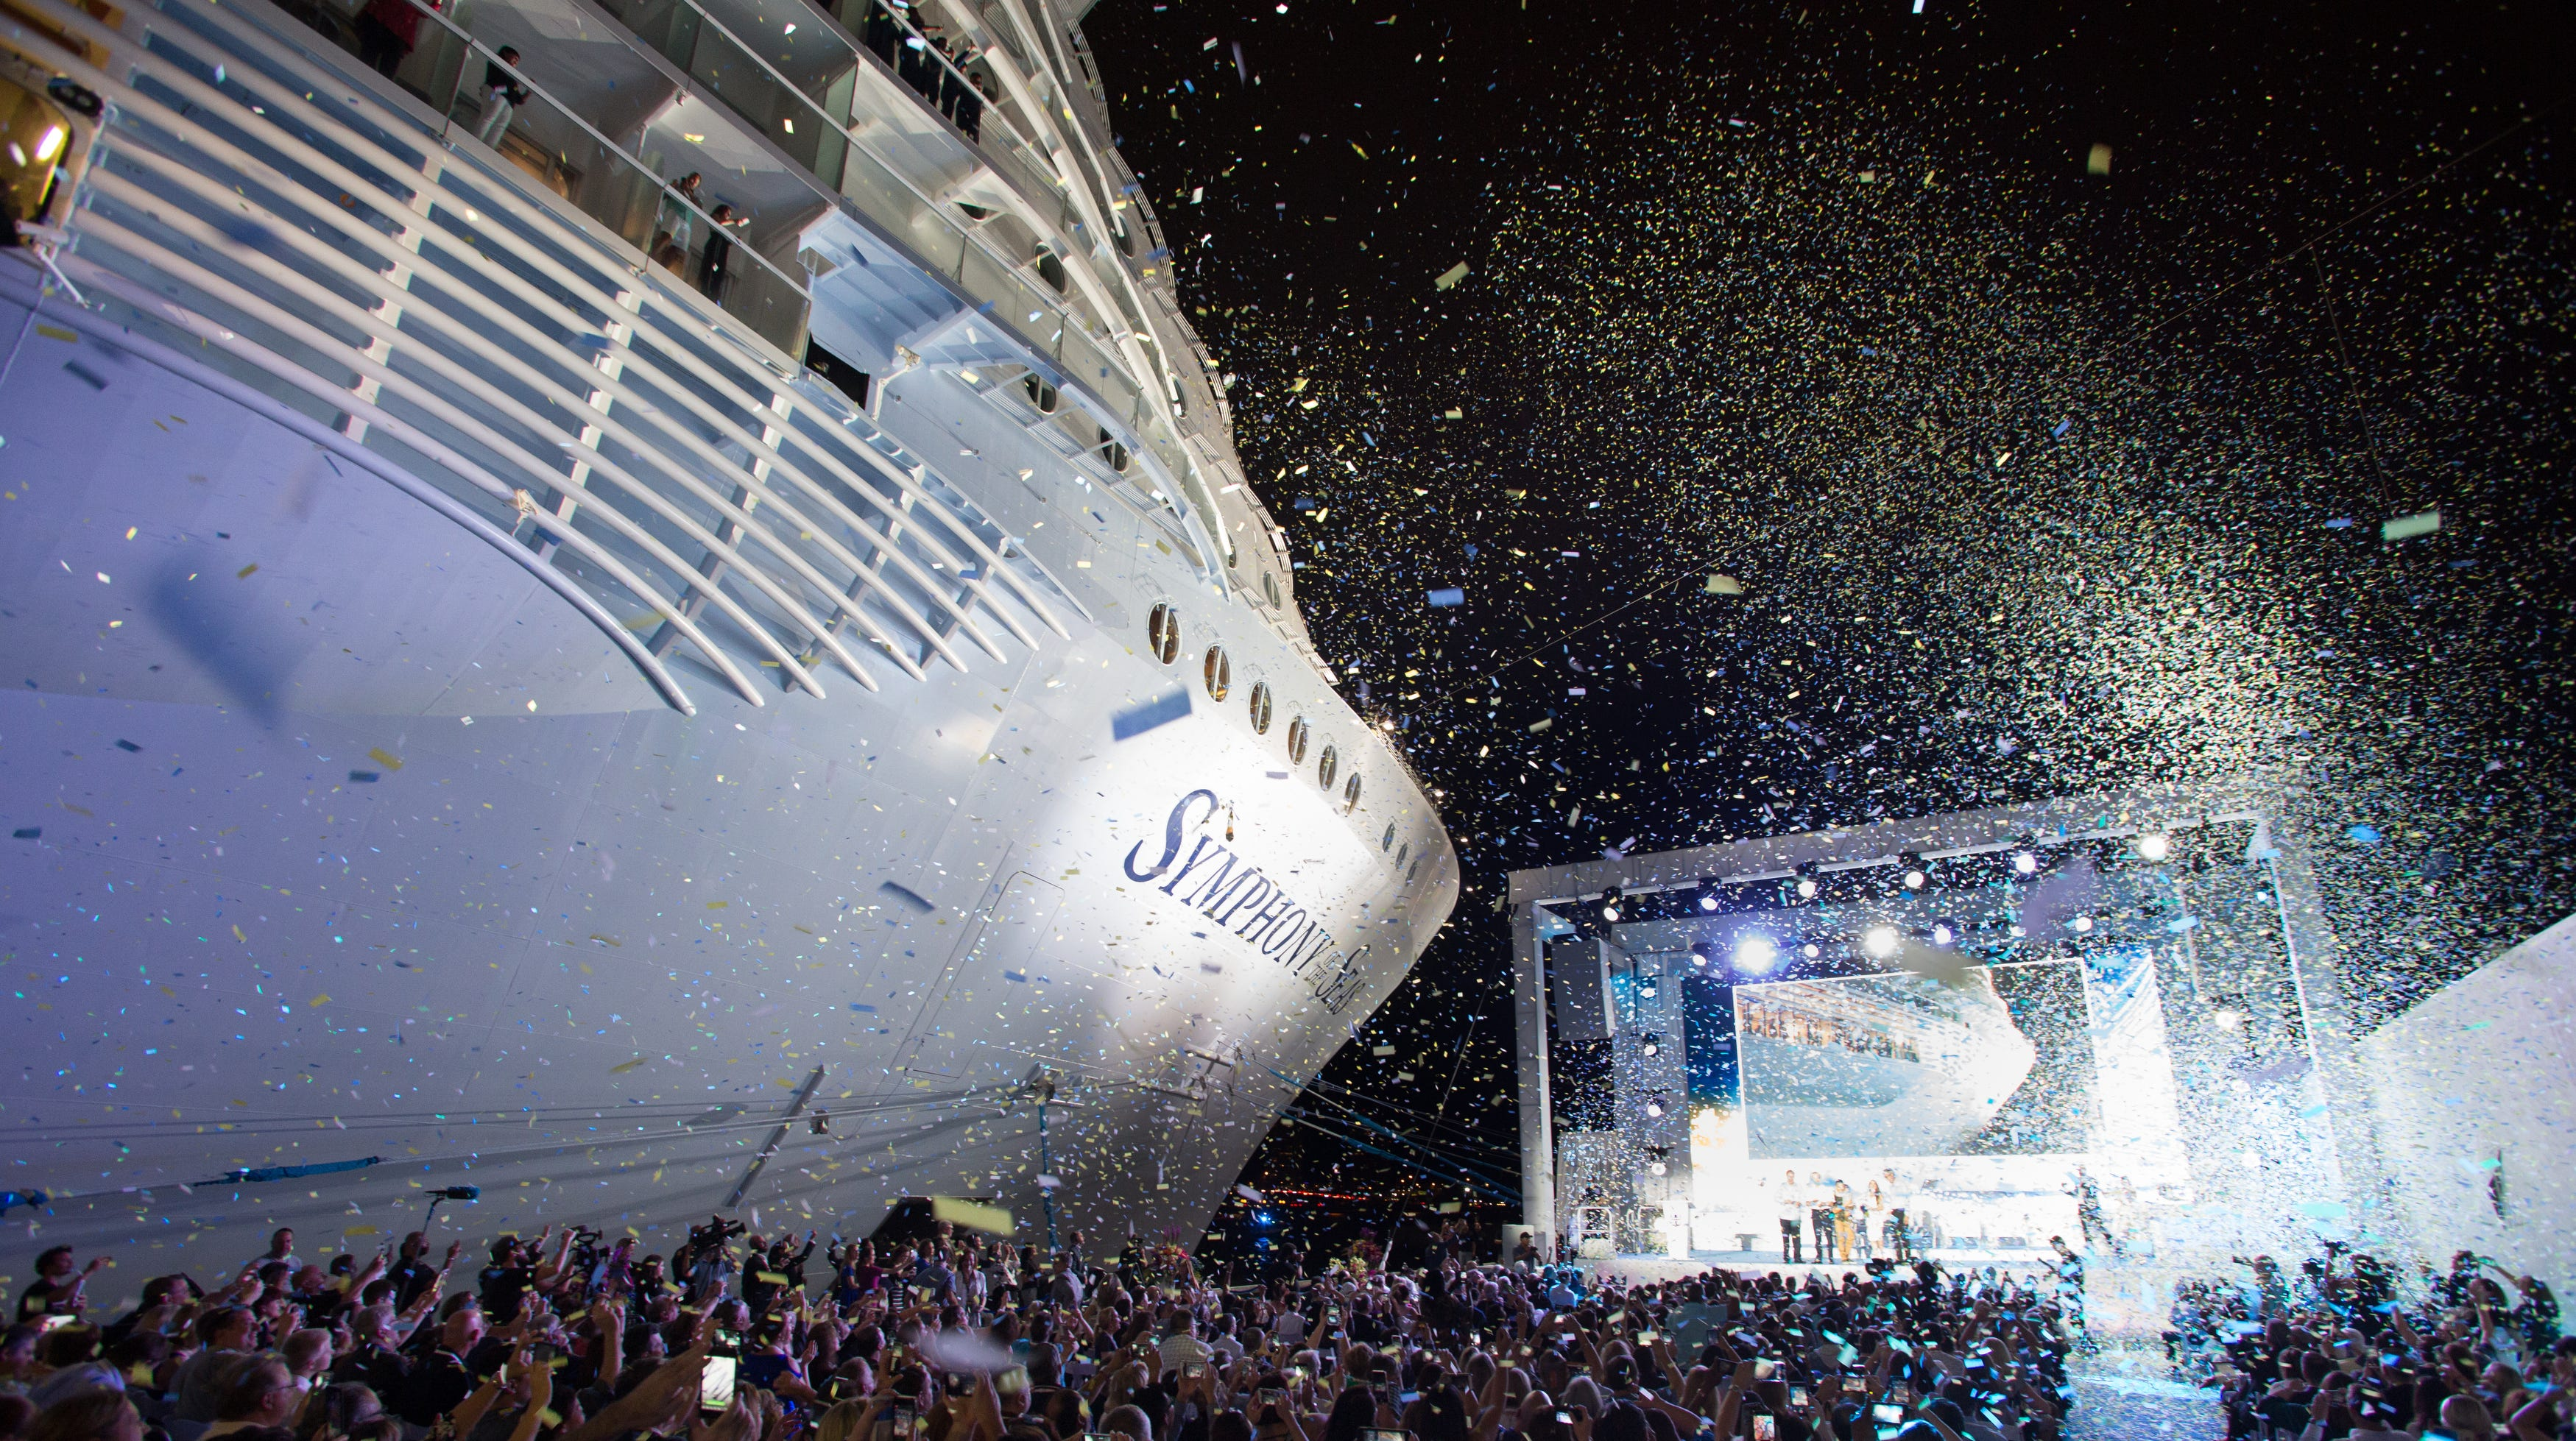 The new world's largest cruise ship, Royal Caribbean's Symphony of the Seas, was christened Nov. 15, in Miami.